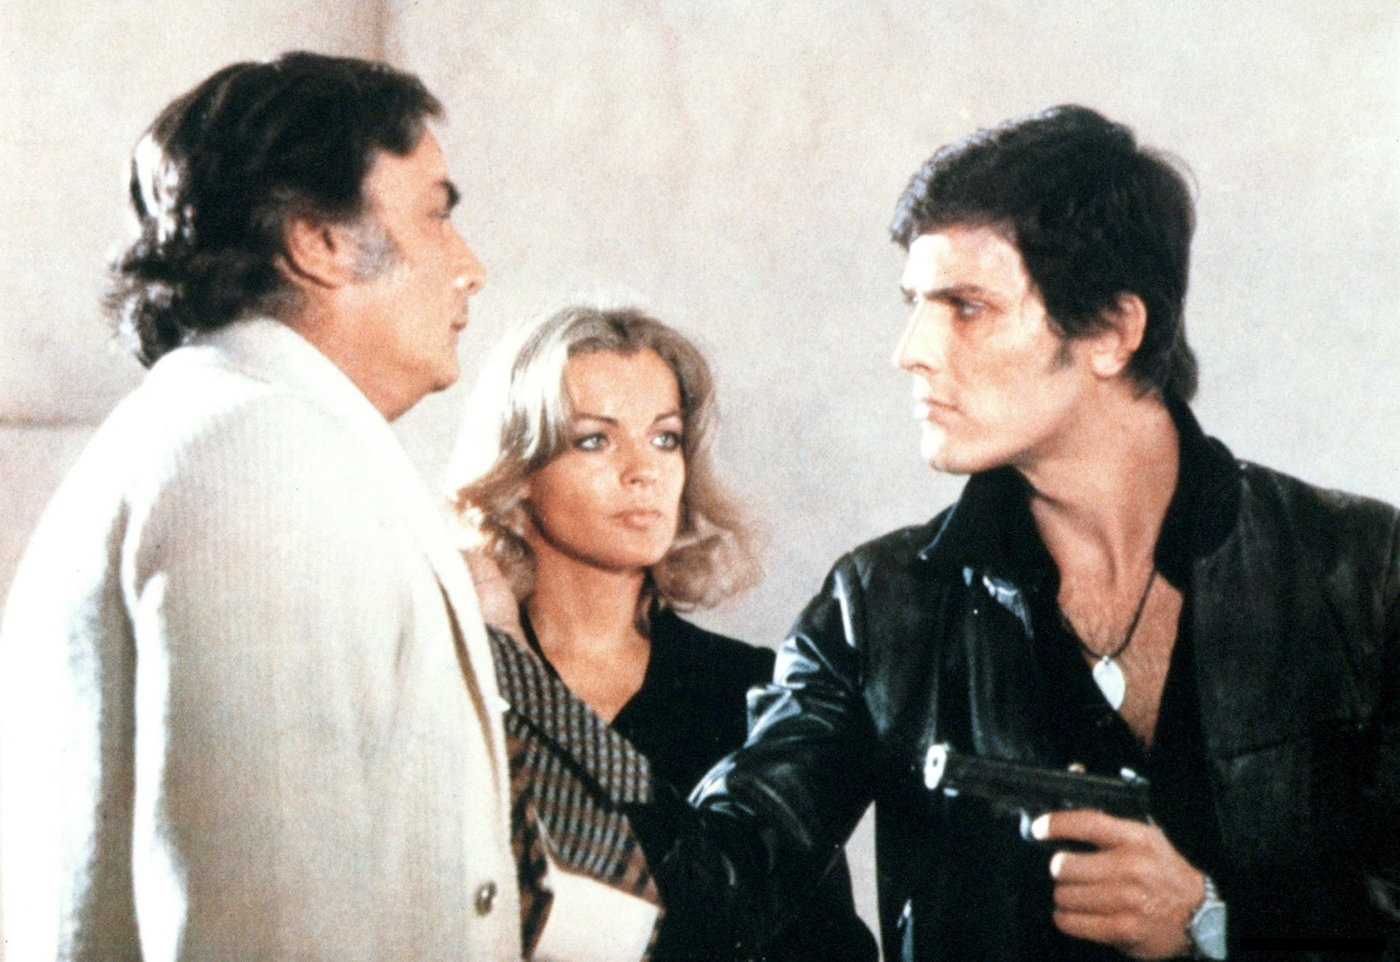 Romy Schneider, Paolo Giusti, and François Perrot in Les innocents aux mains sales (1975)